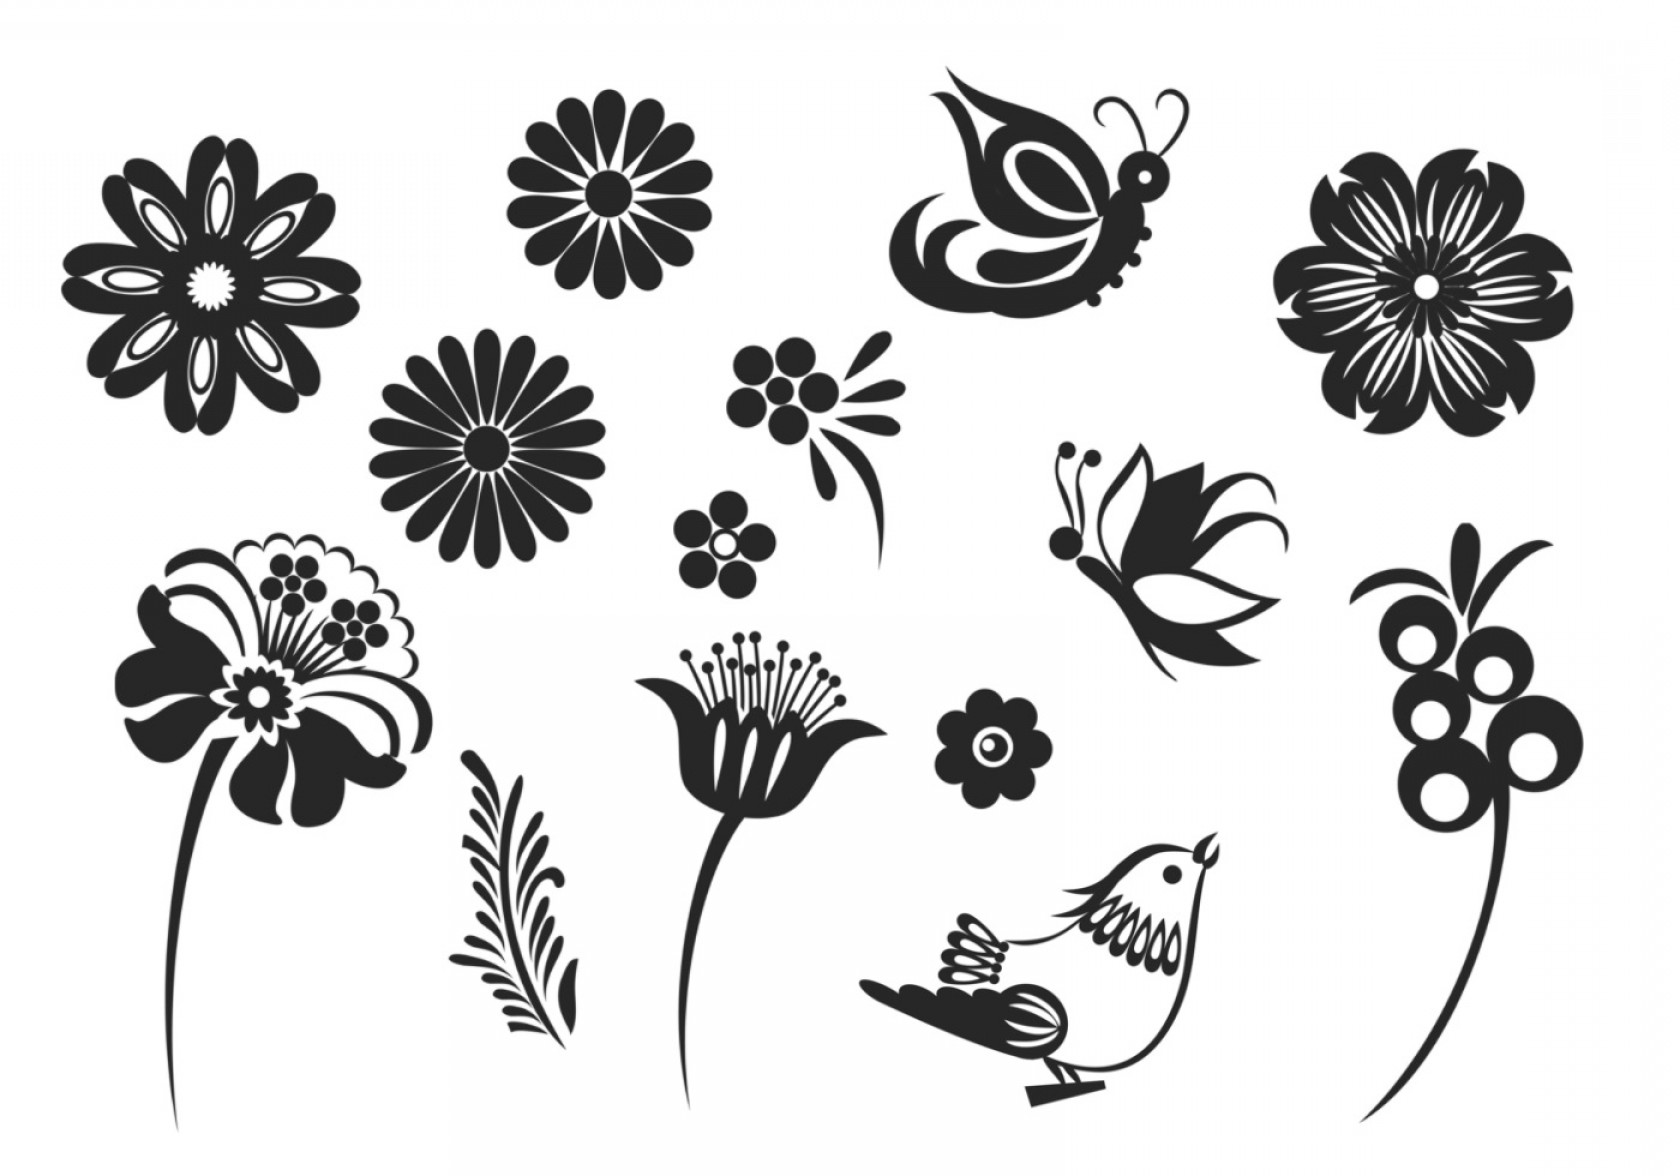 Butter Fly And Flower Vector Black And White: Stylized Butterfly And Flower Vector Pack